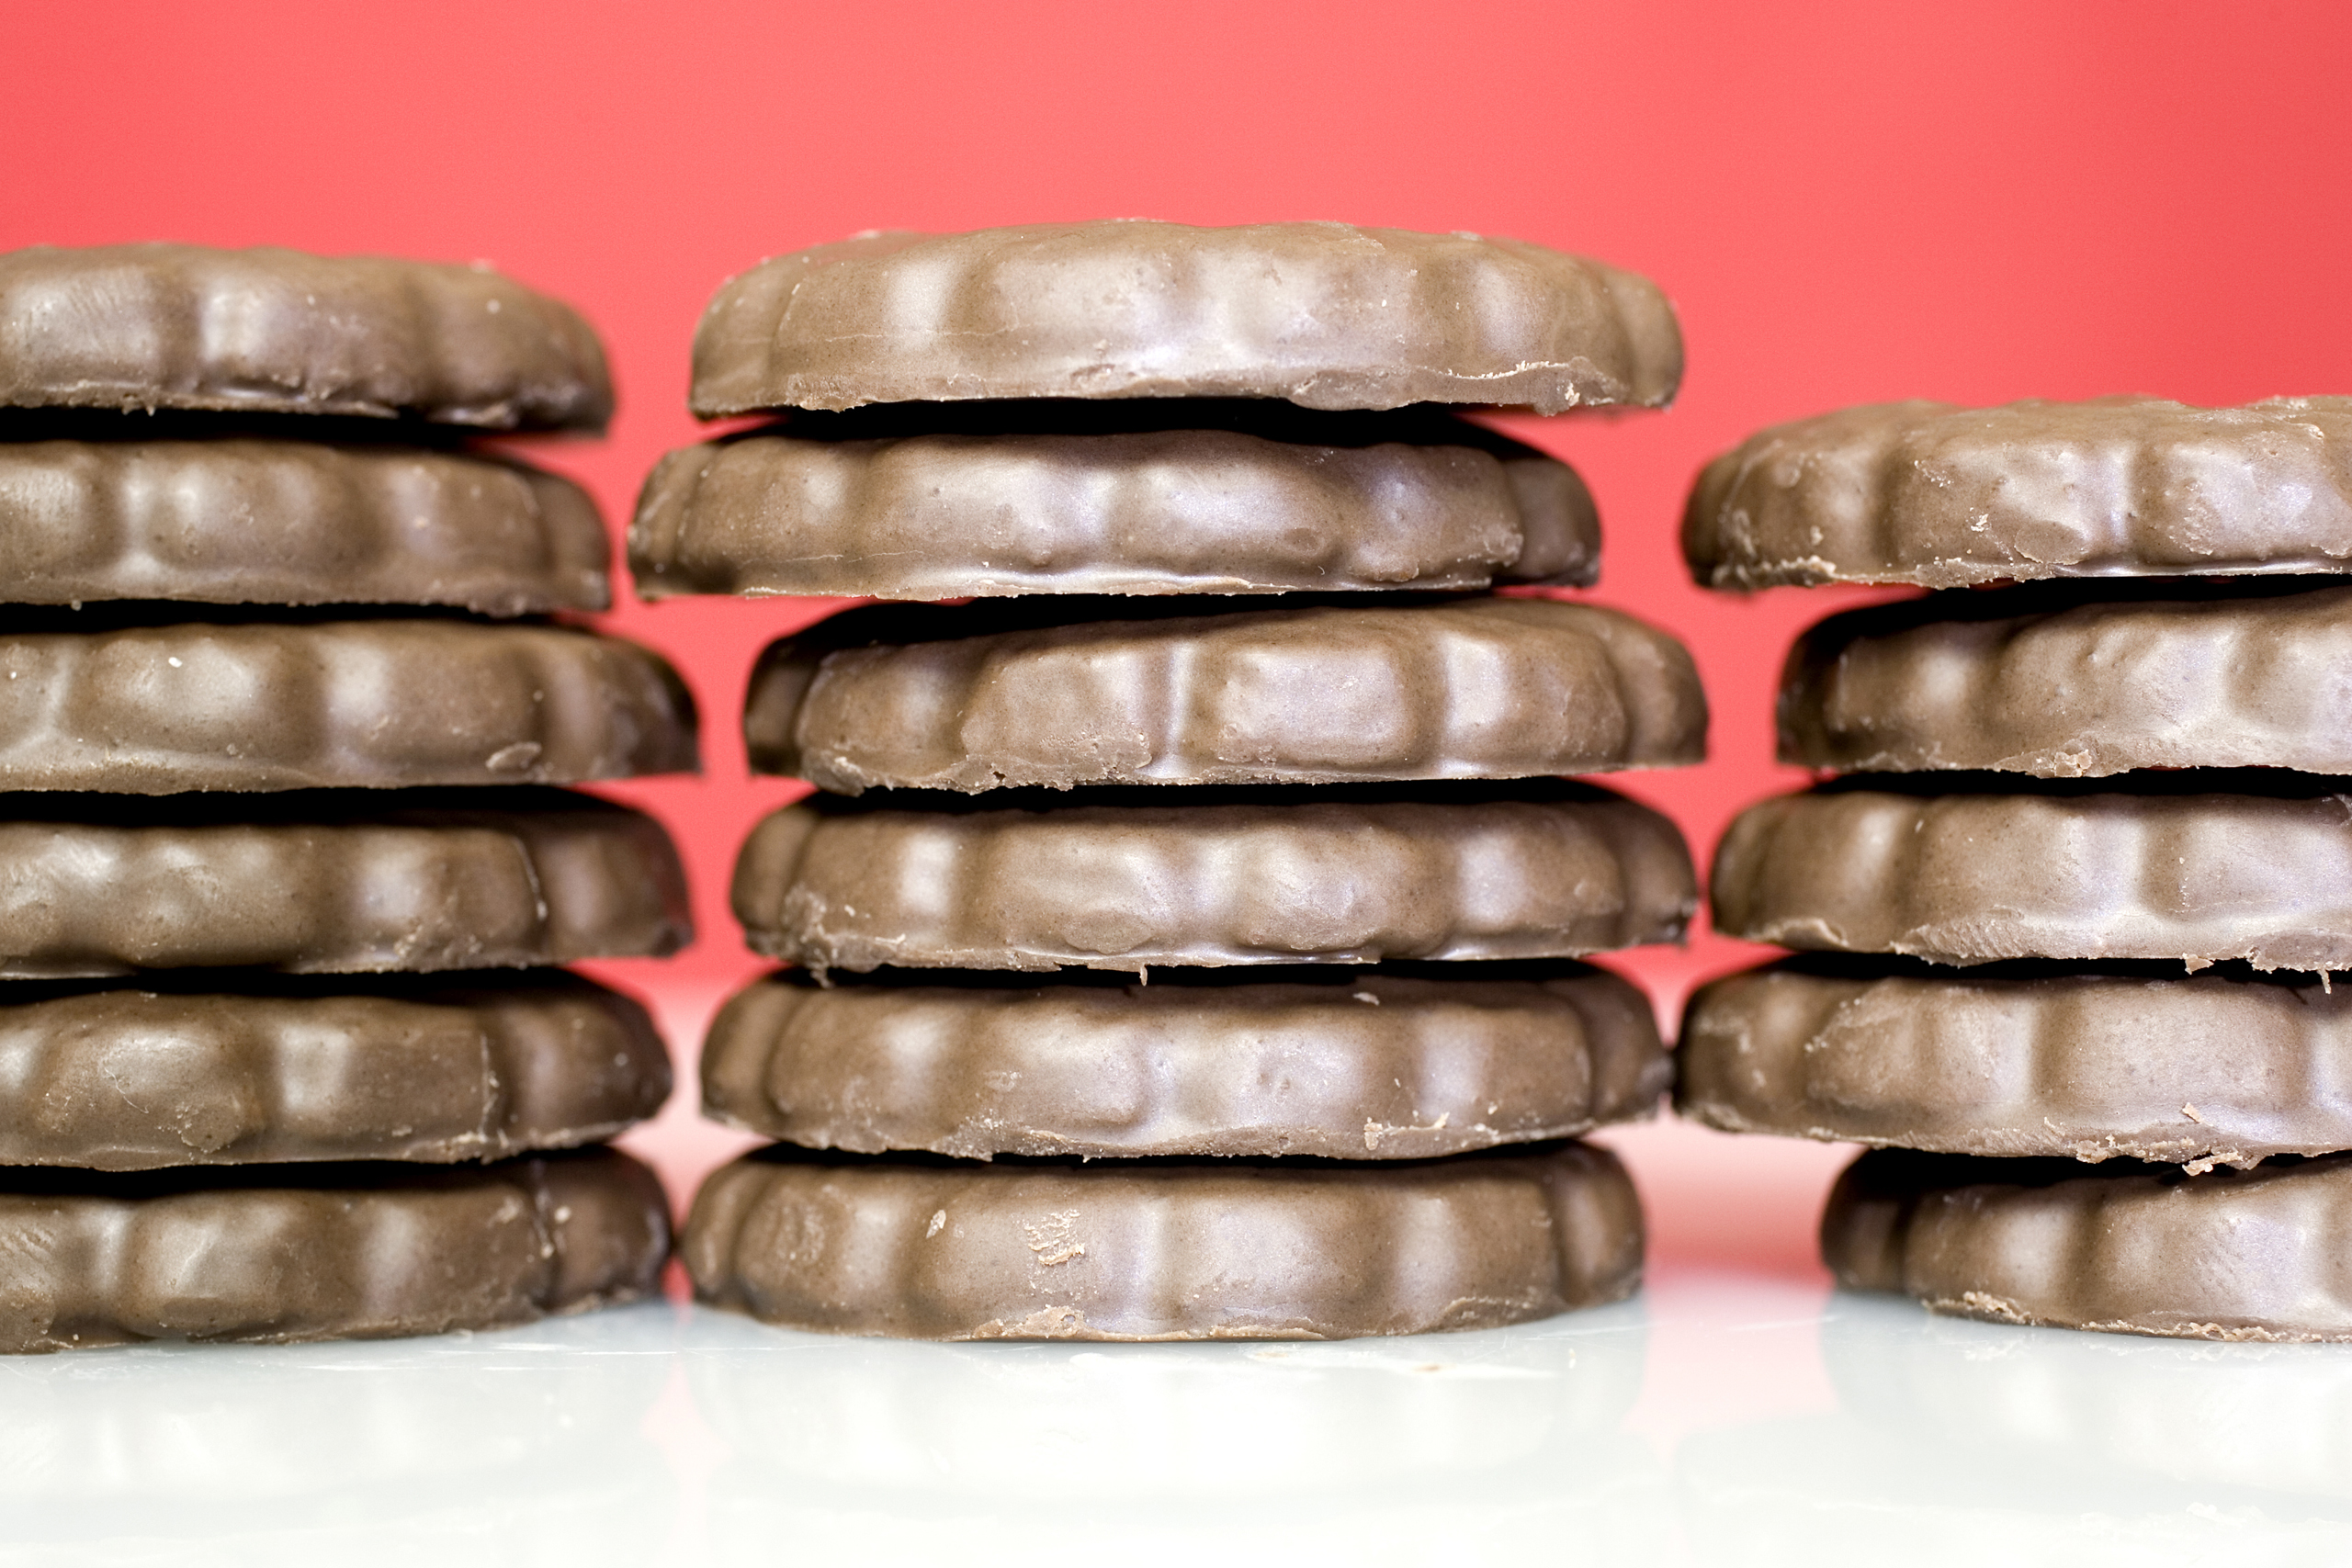 a stack of chocolate thin mint cookies with a red background